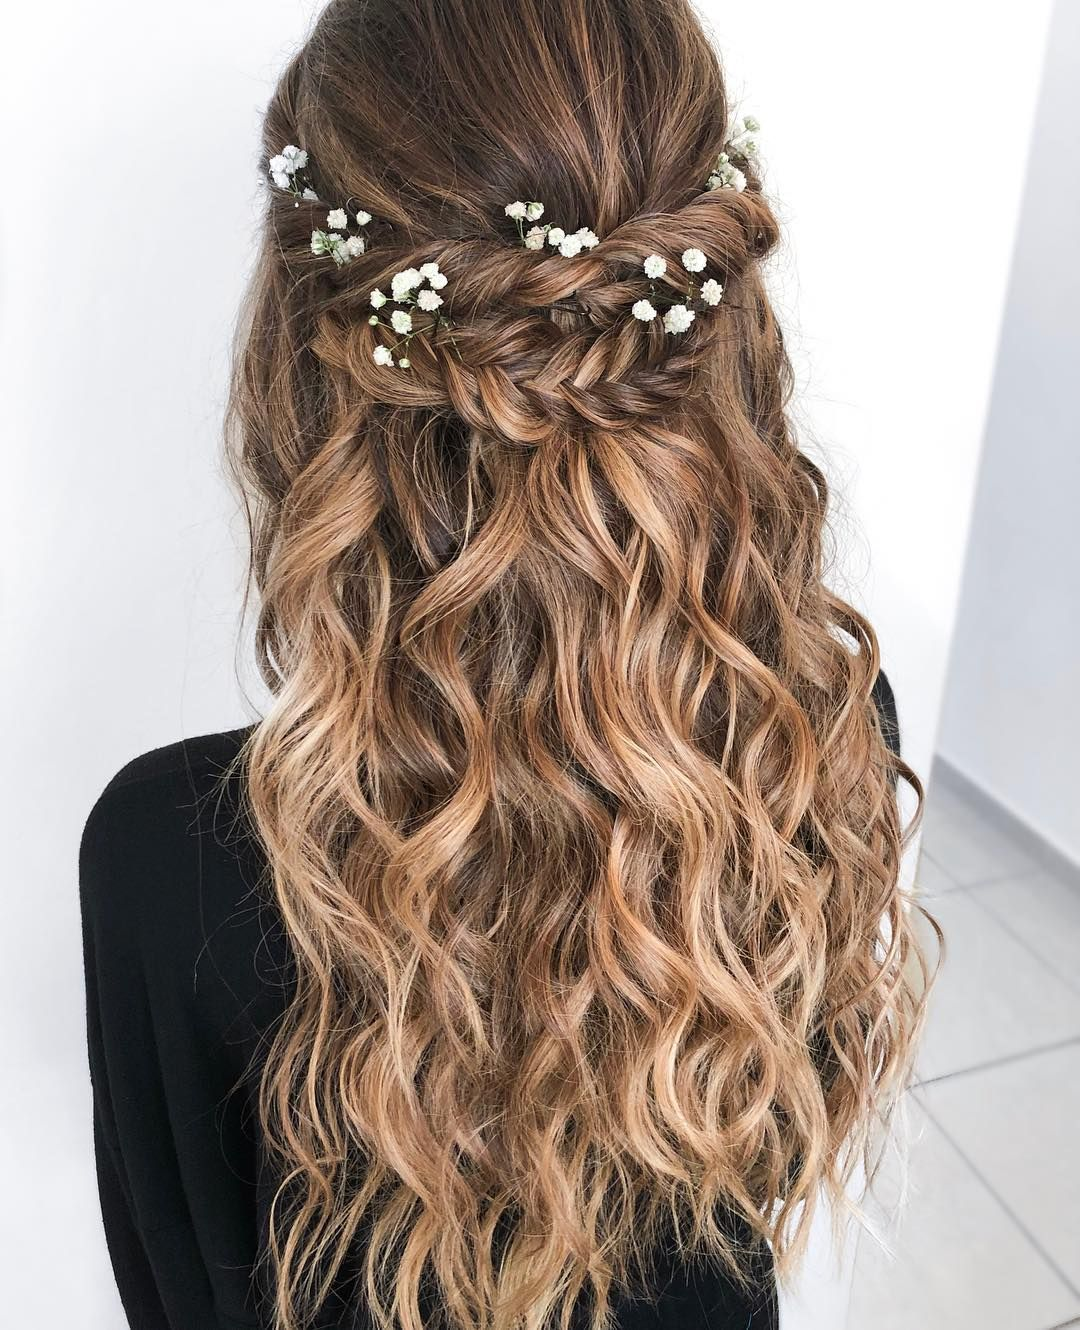 boho chic wedding hair style for long hair with flowers